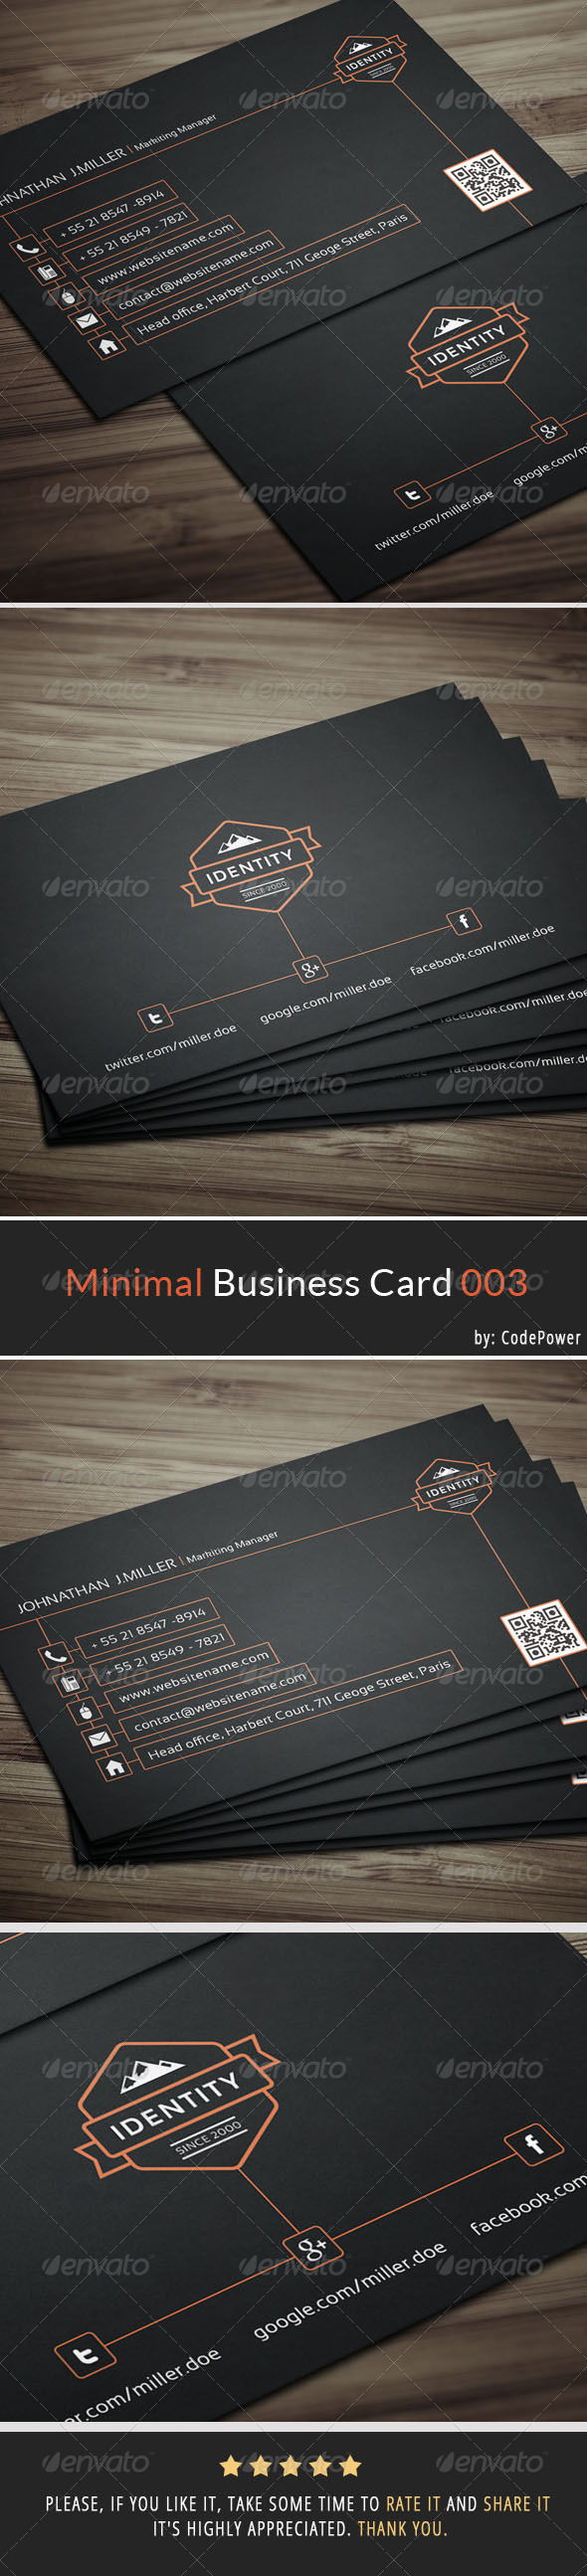 GraphicRiver Minimal Business Card 003 7216688